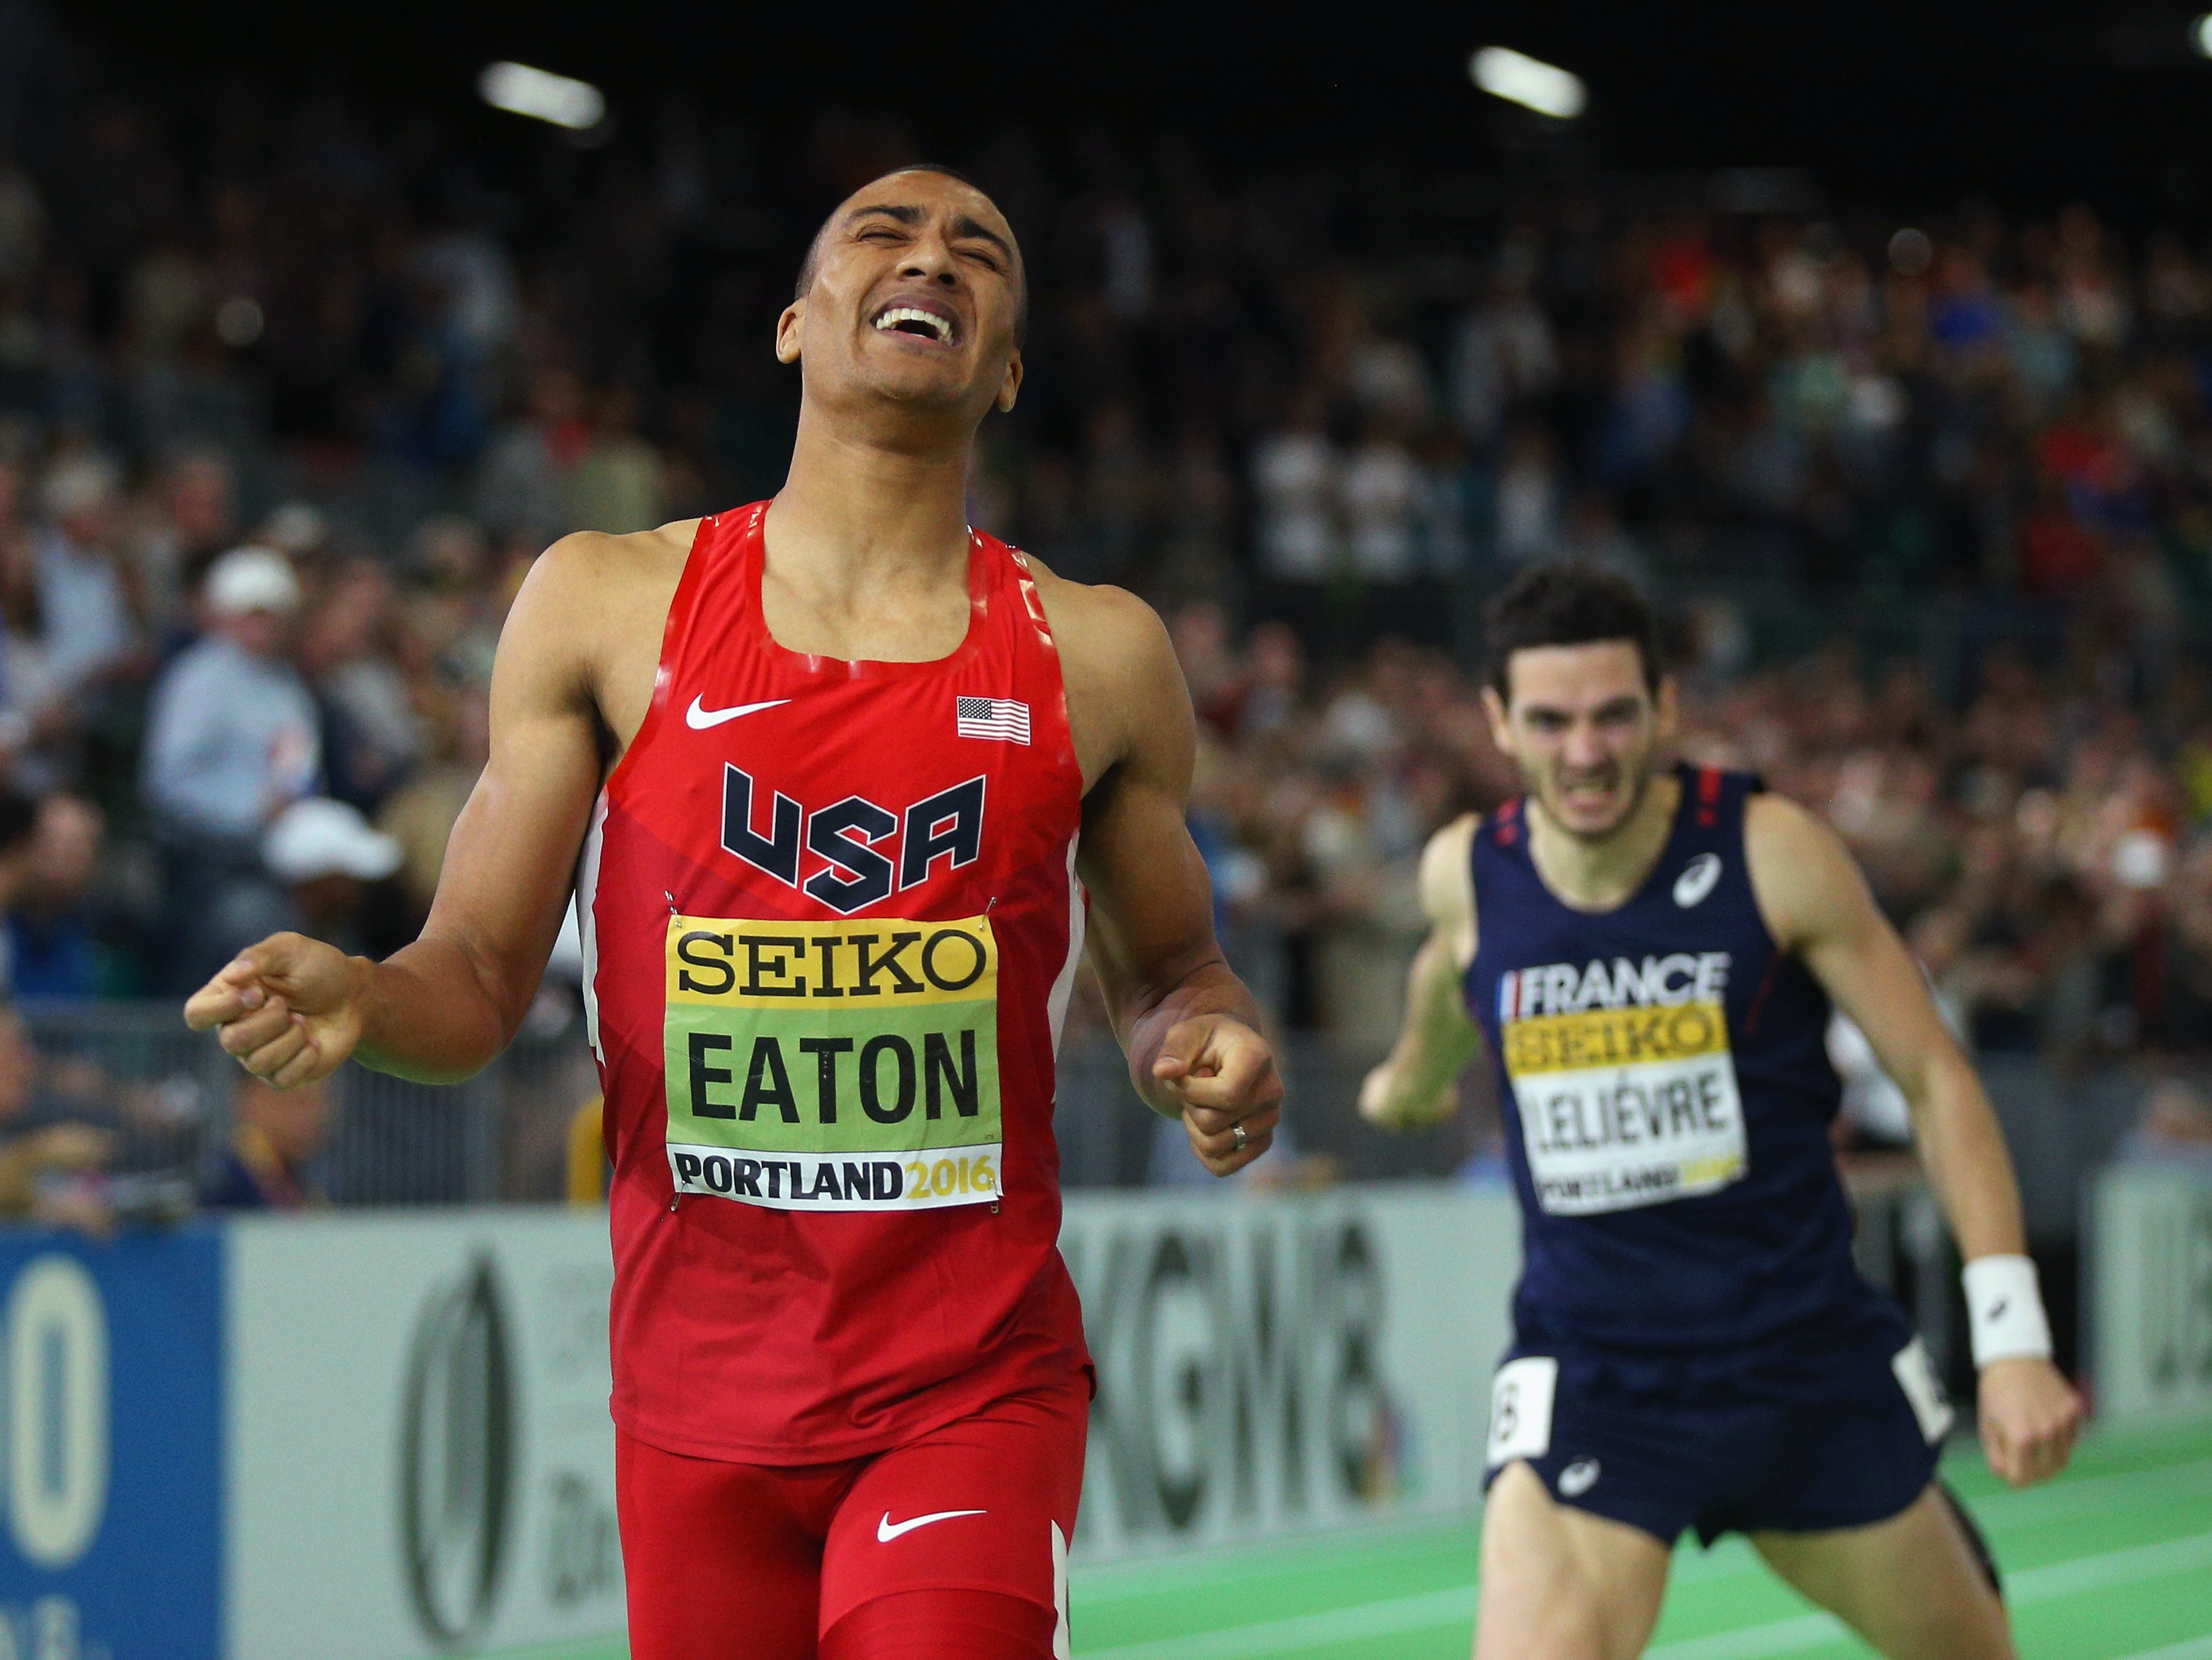 How Does Your Body Recover From a Decathlon?